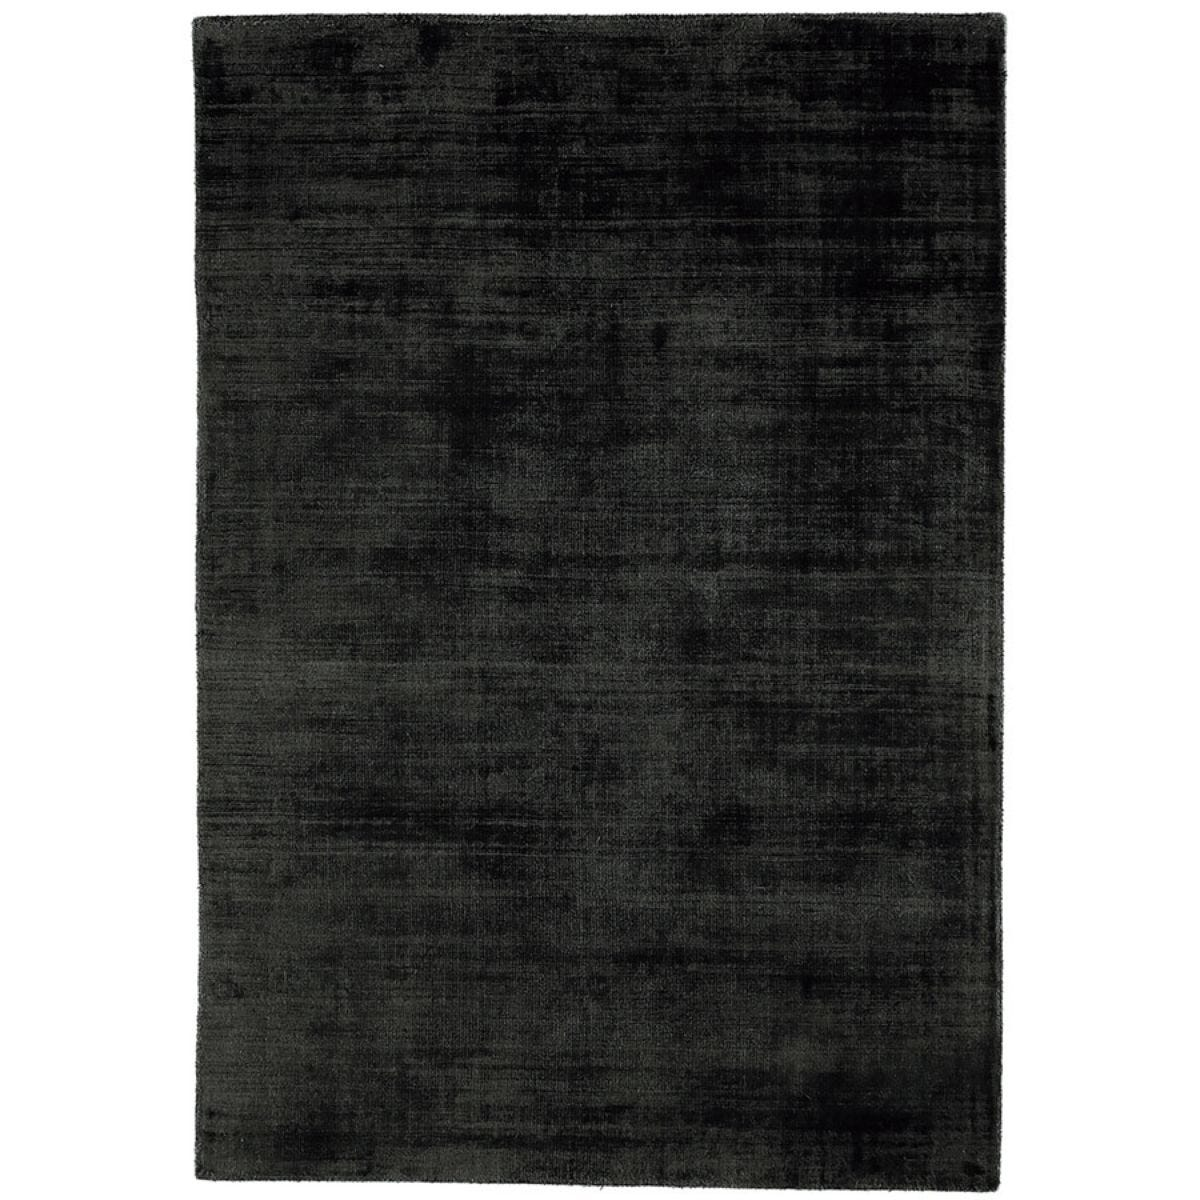 Asiatic Blade Rug , 240 x 340cm - Charcoal